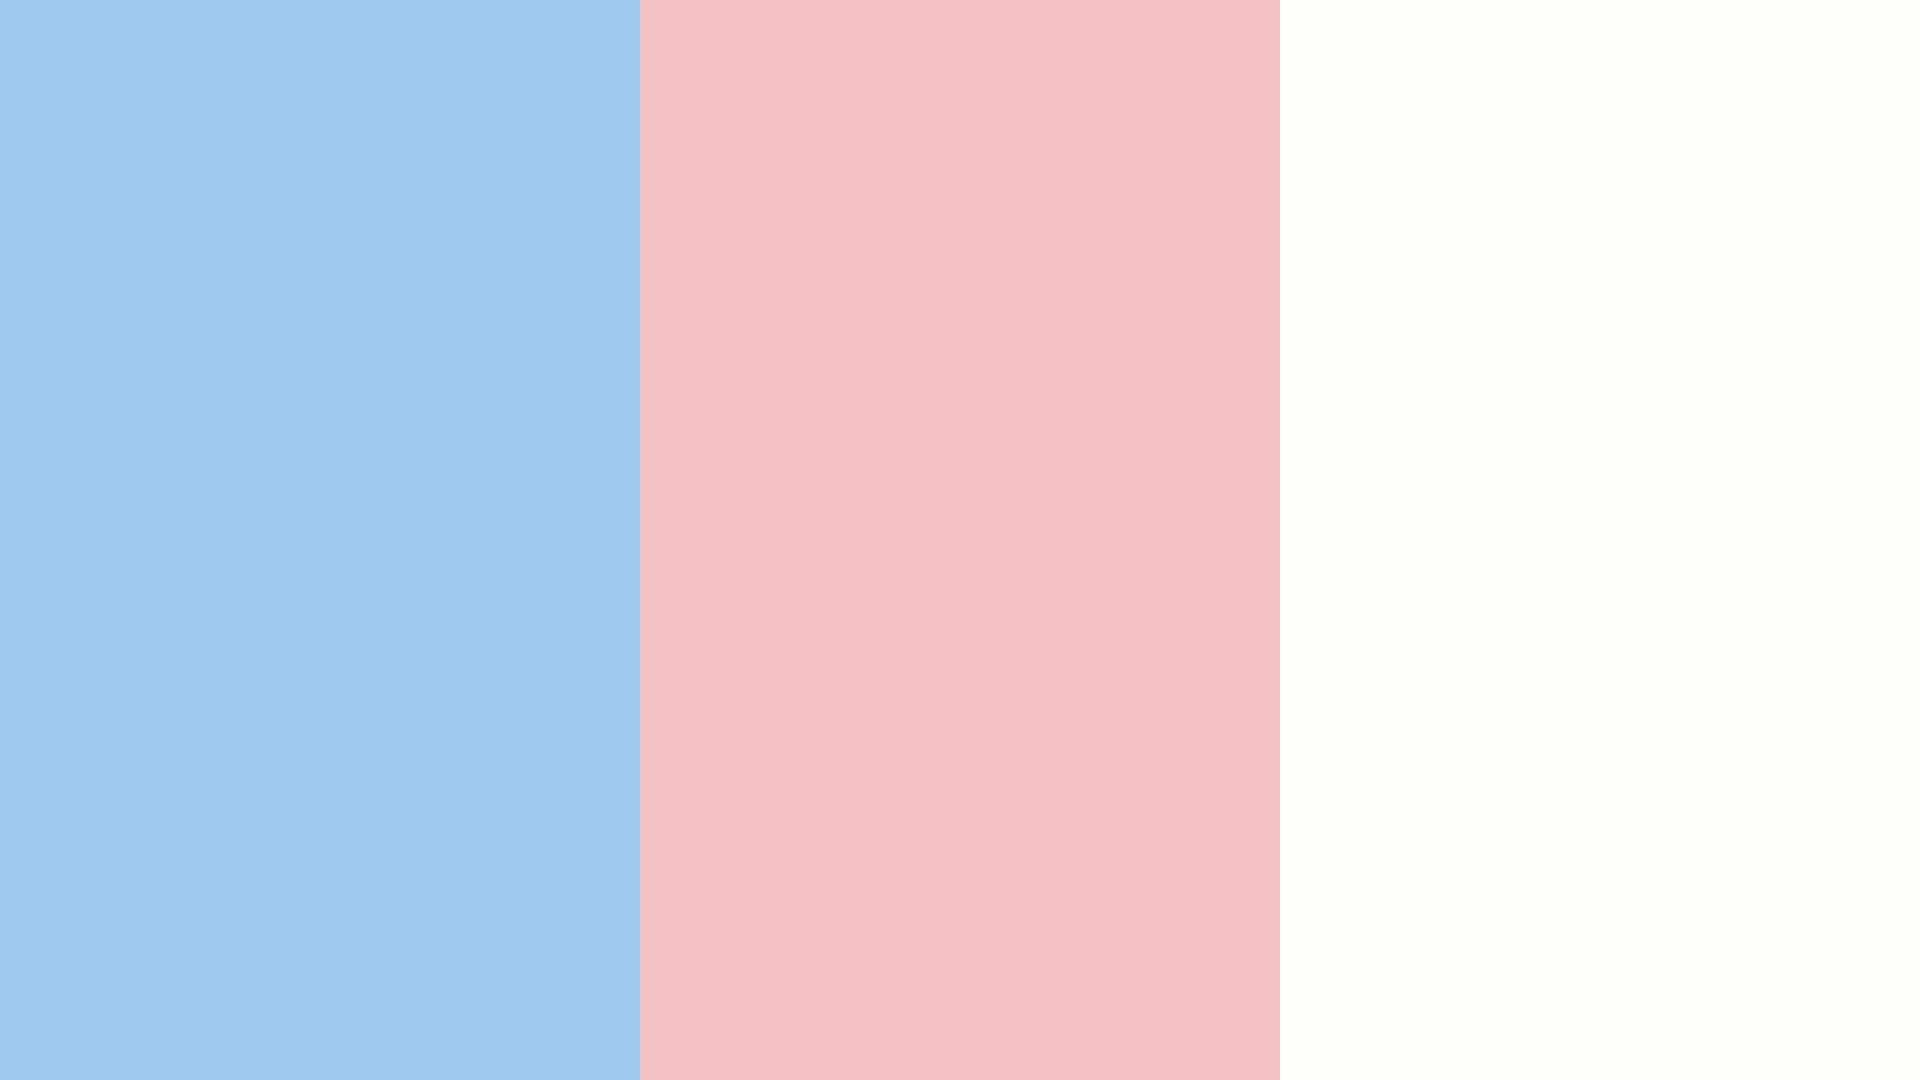 Light pink and blue wallpaper html code - Light Blue And Pink Background Images Amp Pictures Becuo Html Code Awsome Backgrounds